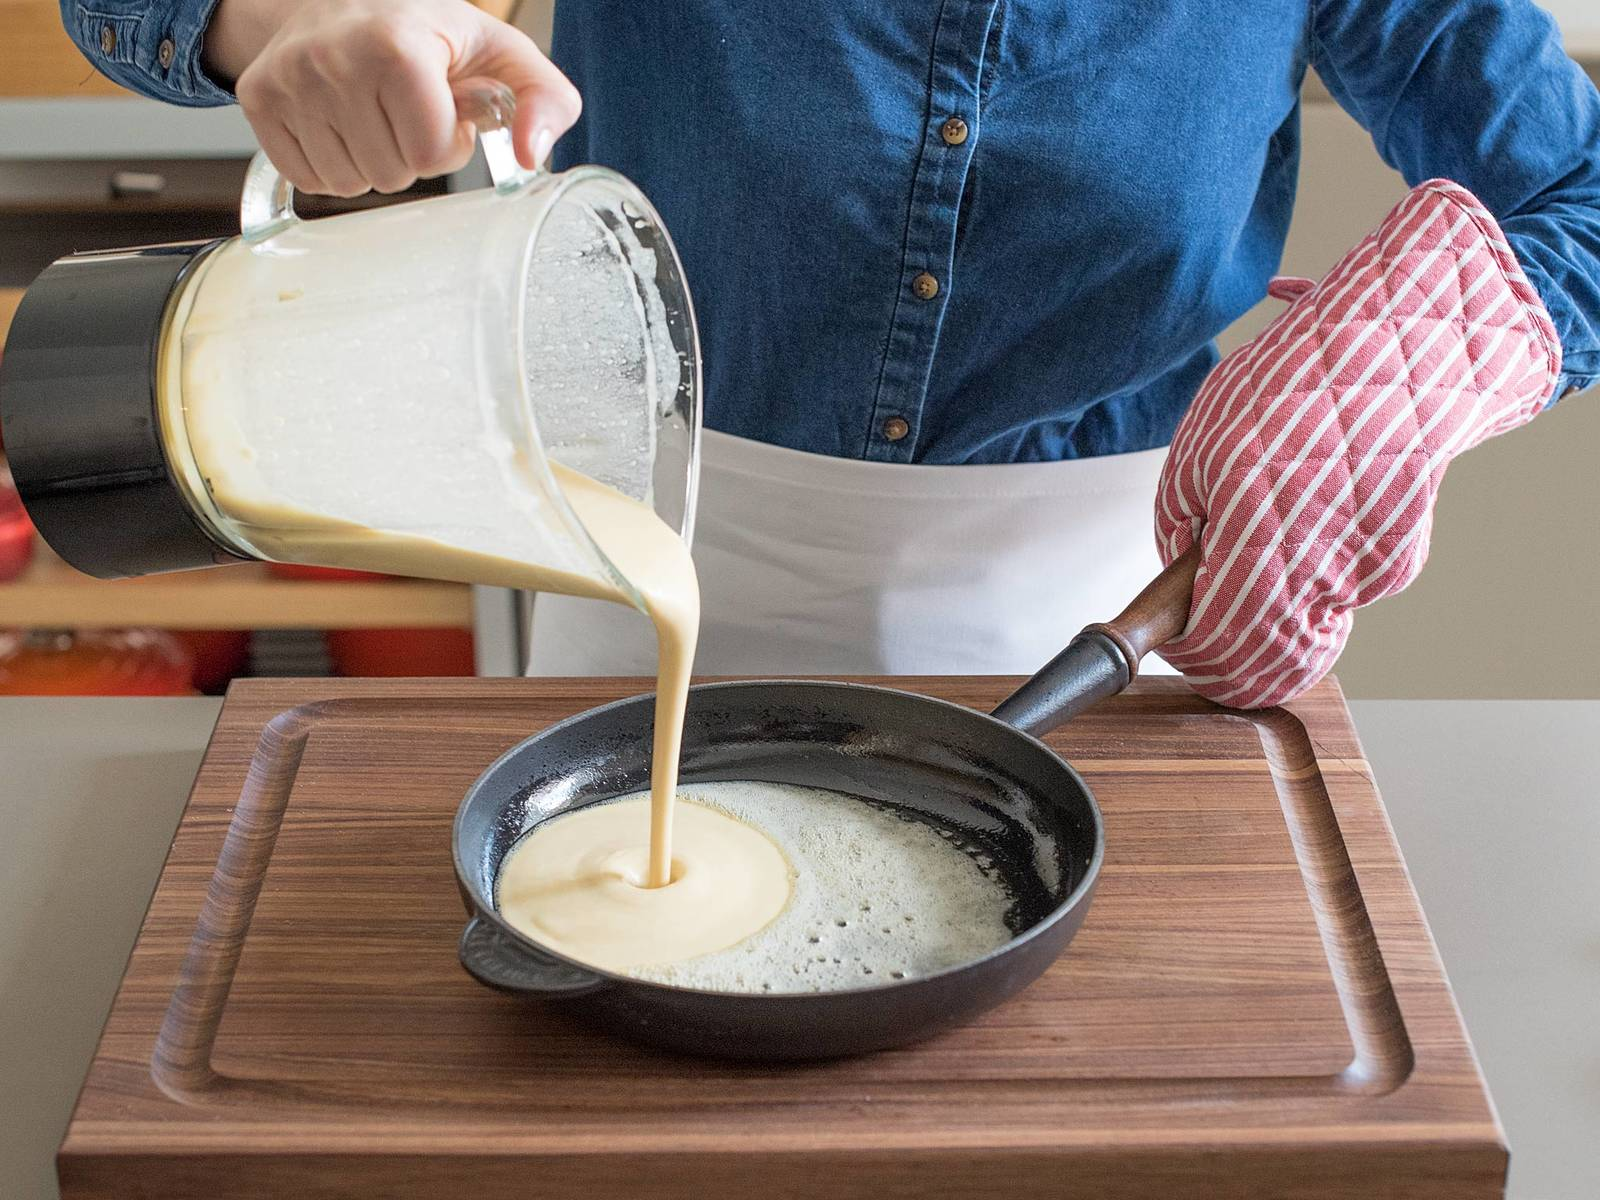 Add butter to frying pan and swirl to coat all sides. Add batter to pan.